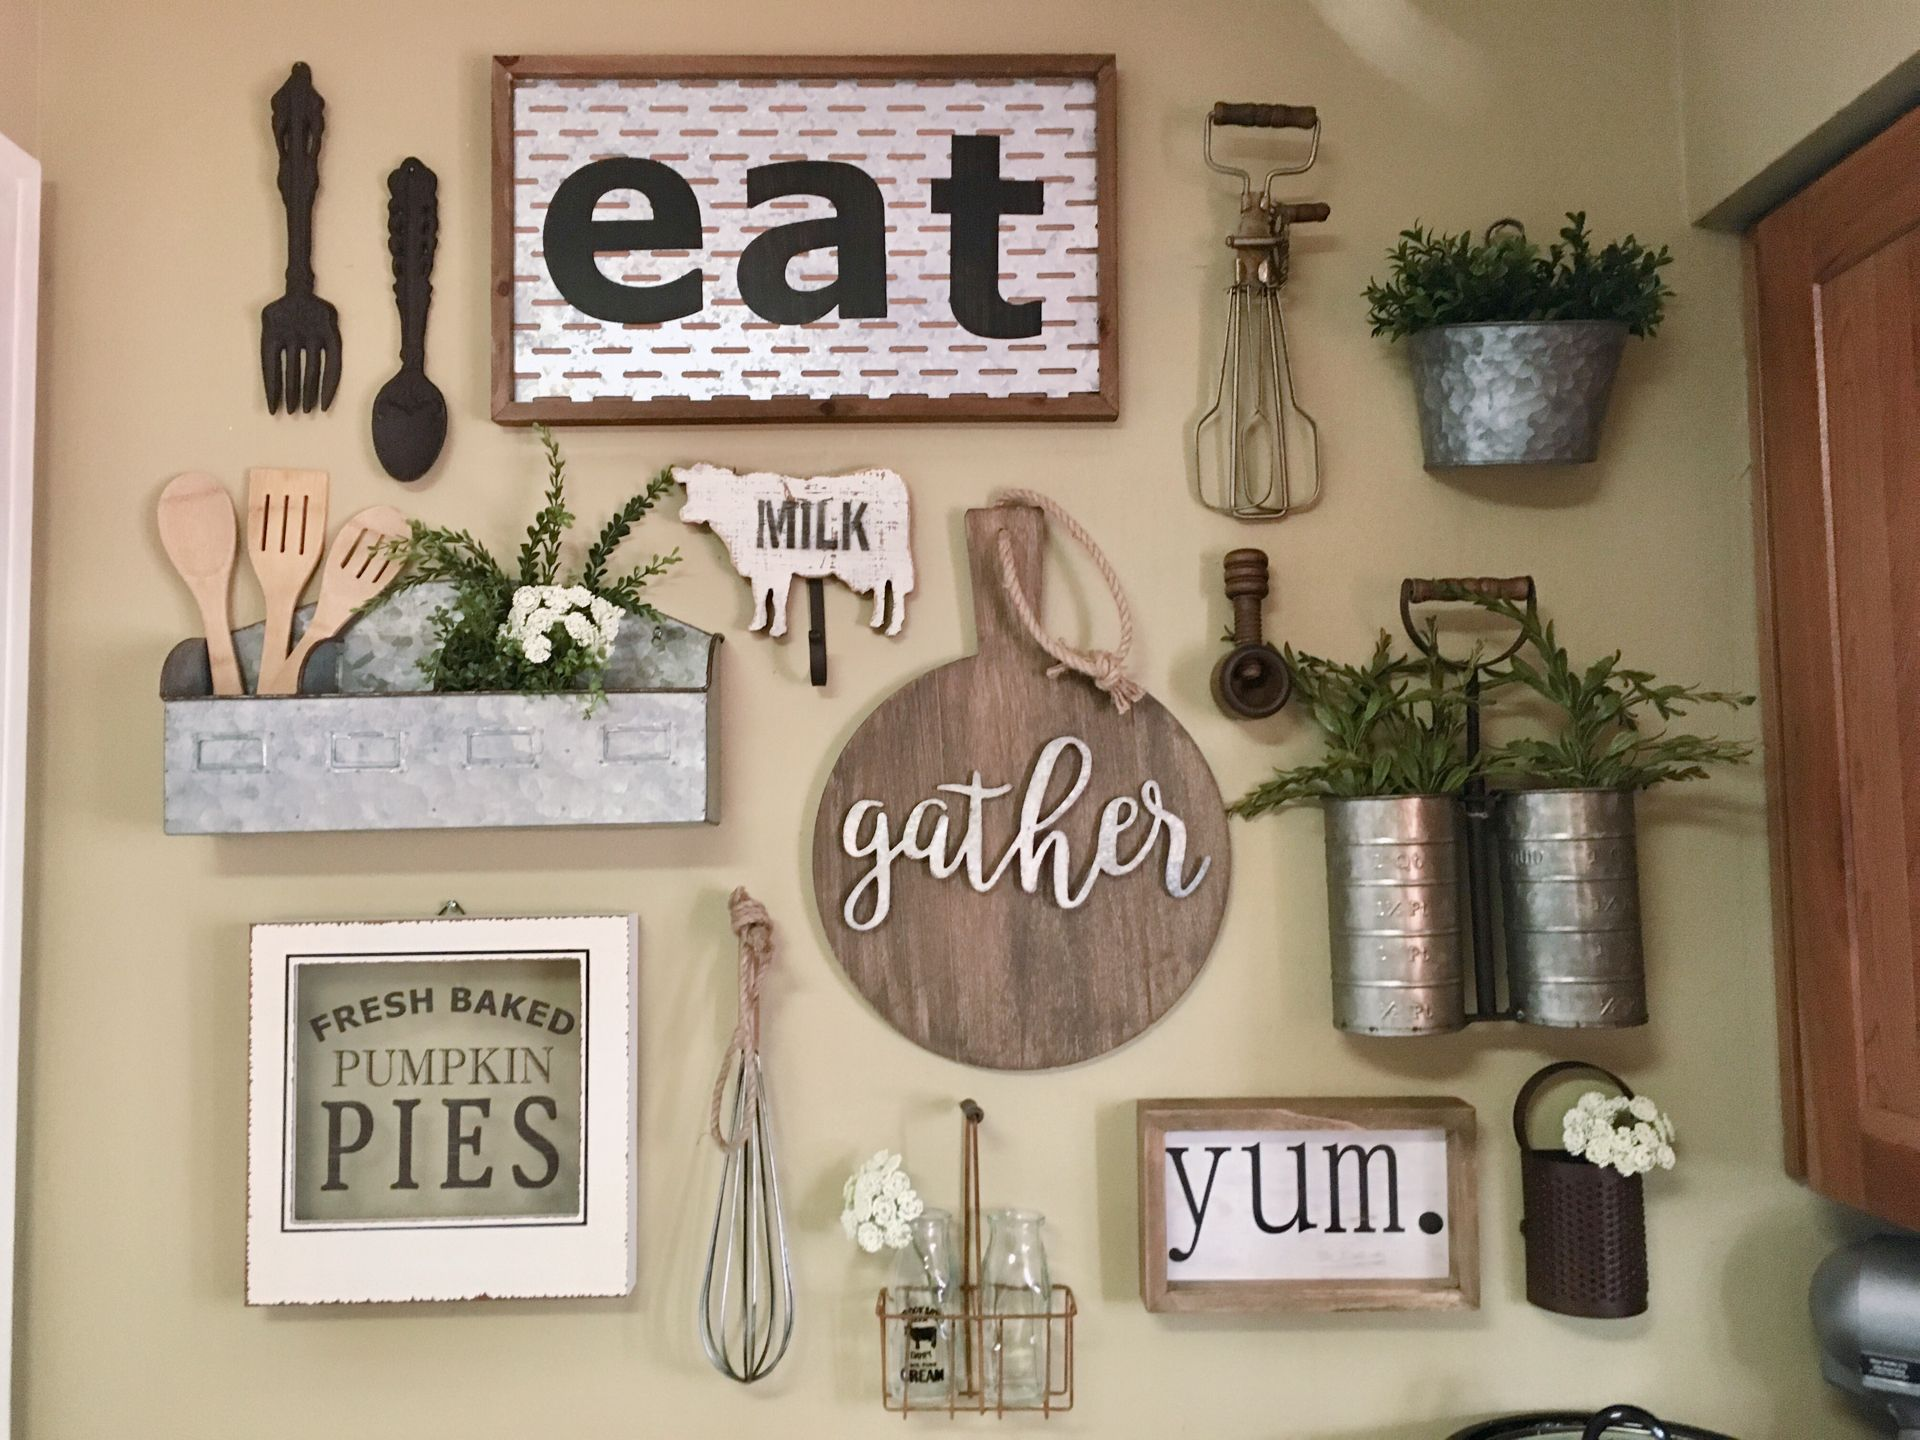 my kitchen gallery wall kitchendecor gallerywall farmhouse decorating walldecor h on kitchen decor wall ideas id=58087